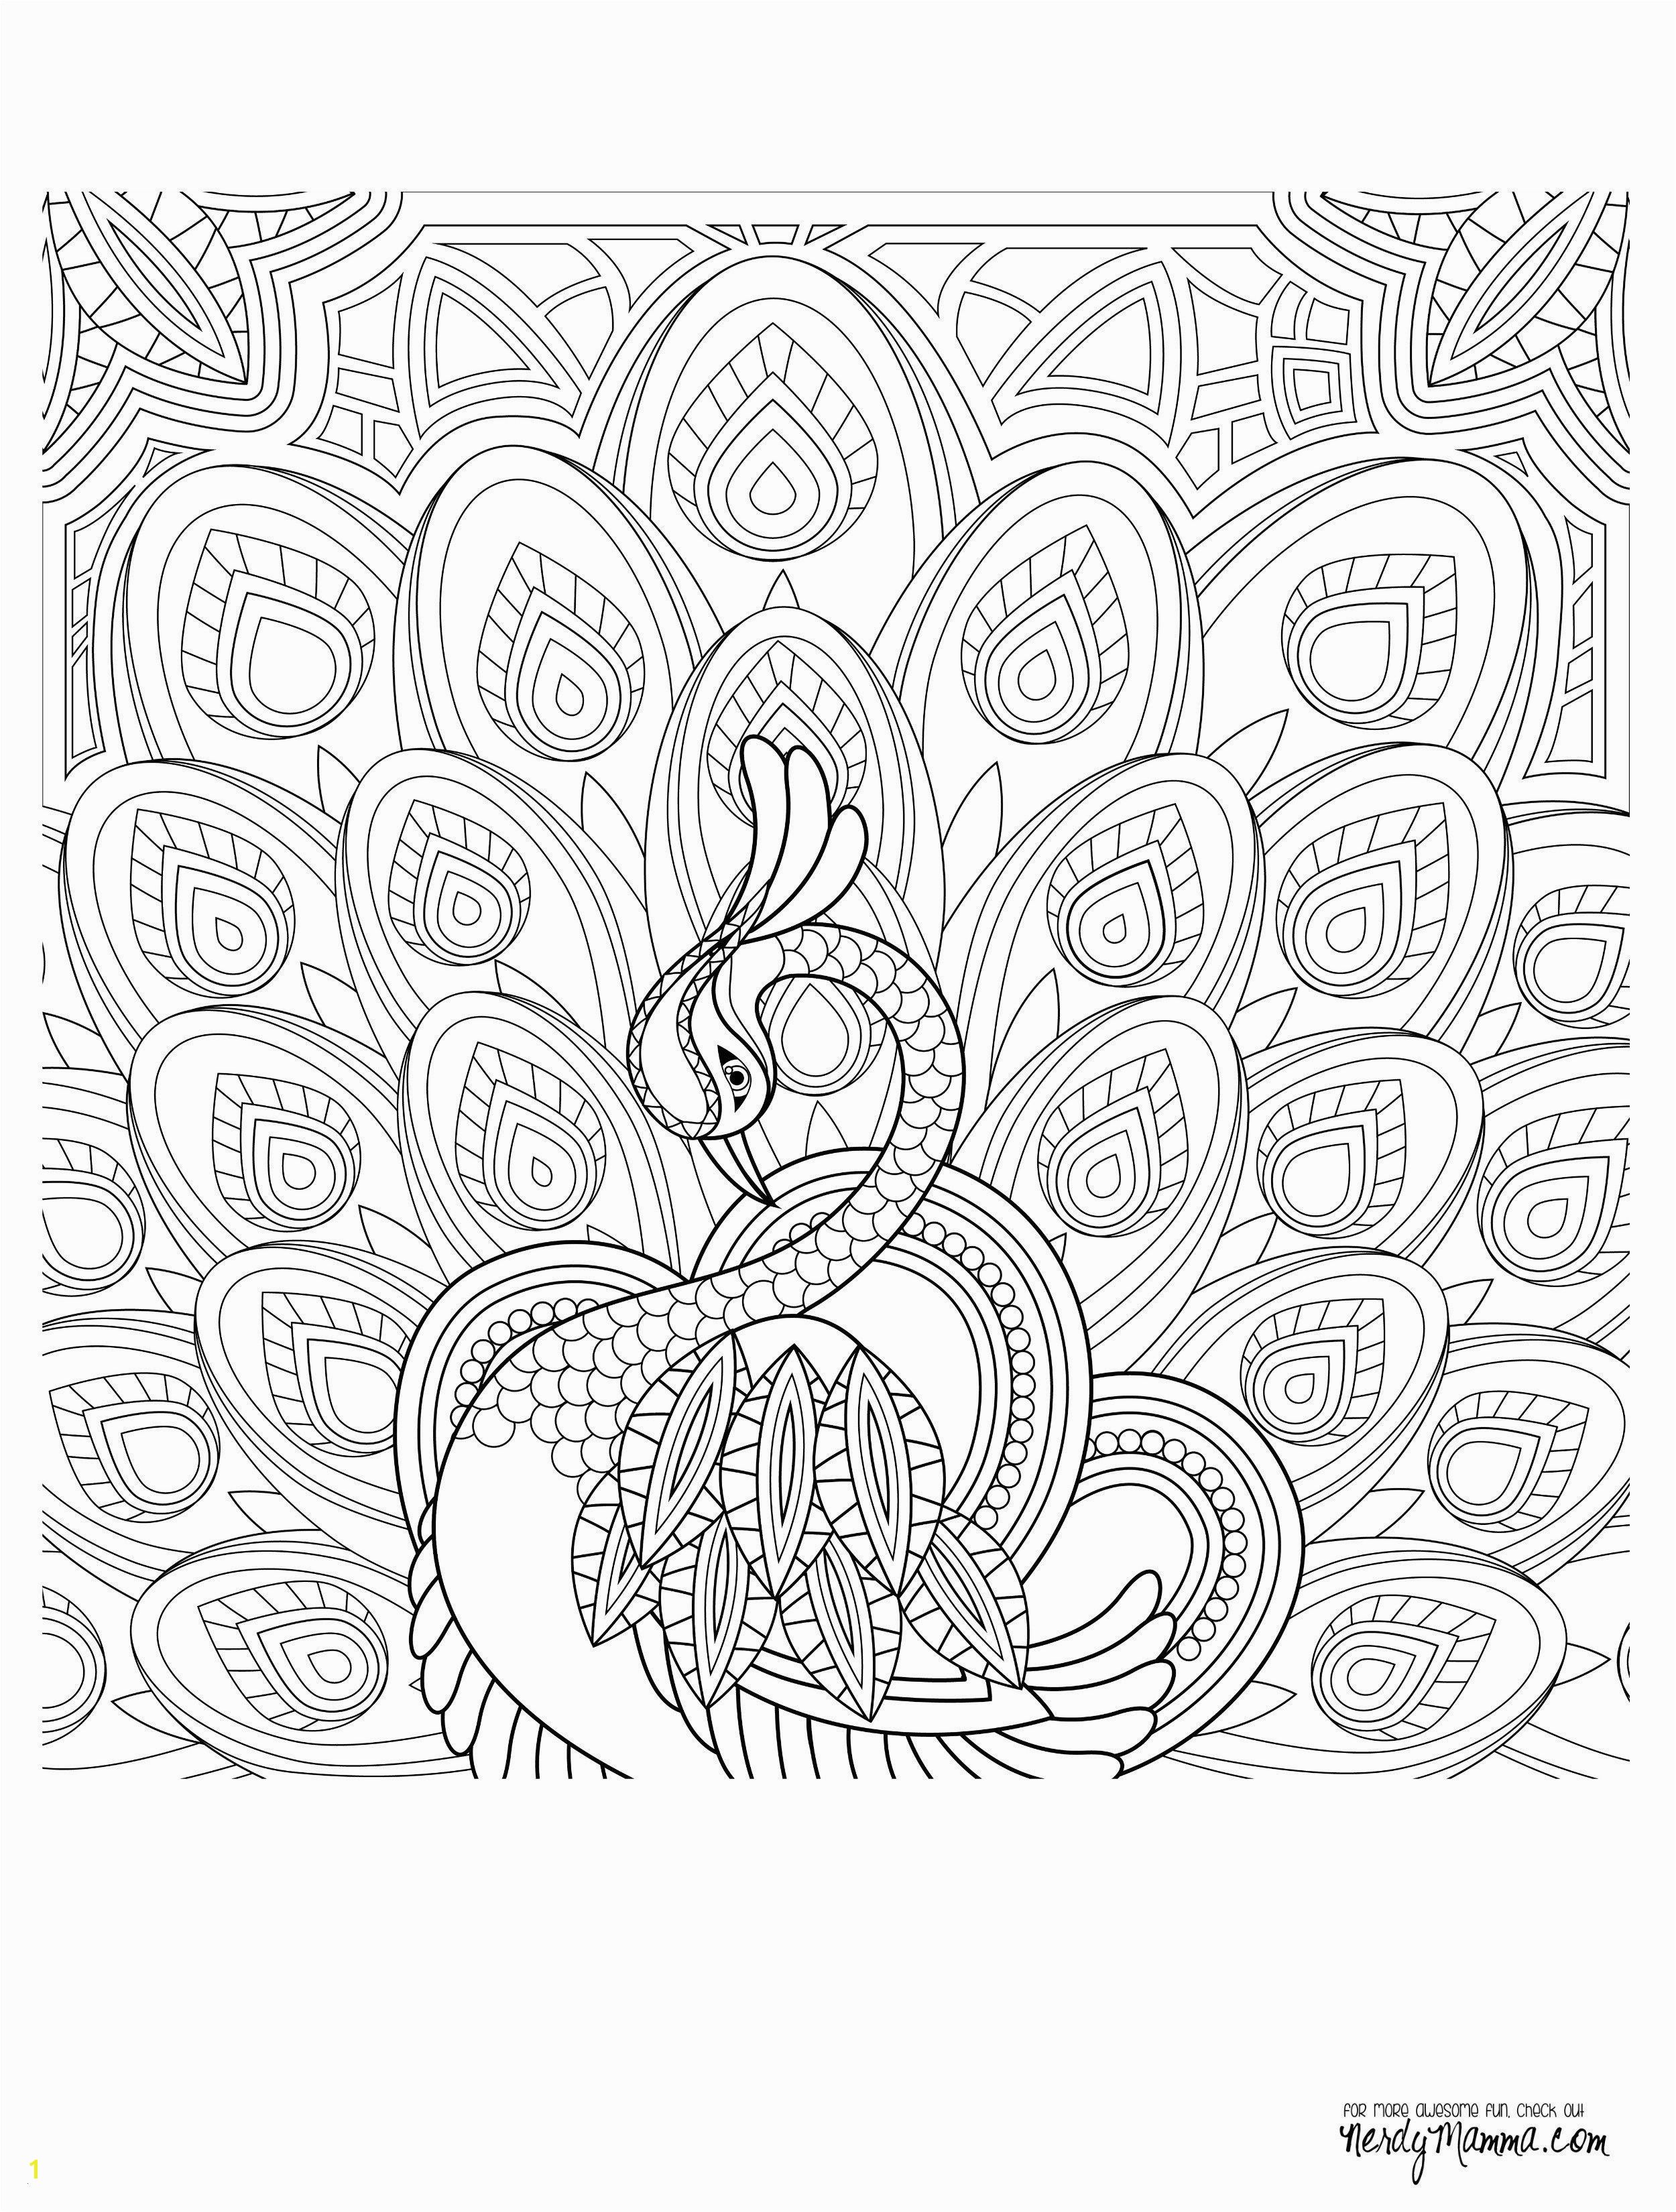 Skyrim Coloring Pages Luxury Skyrim Coloring Pages Beautiful Skyrim Coloring Pages